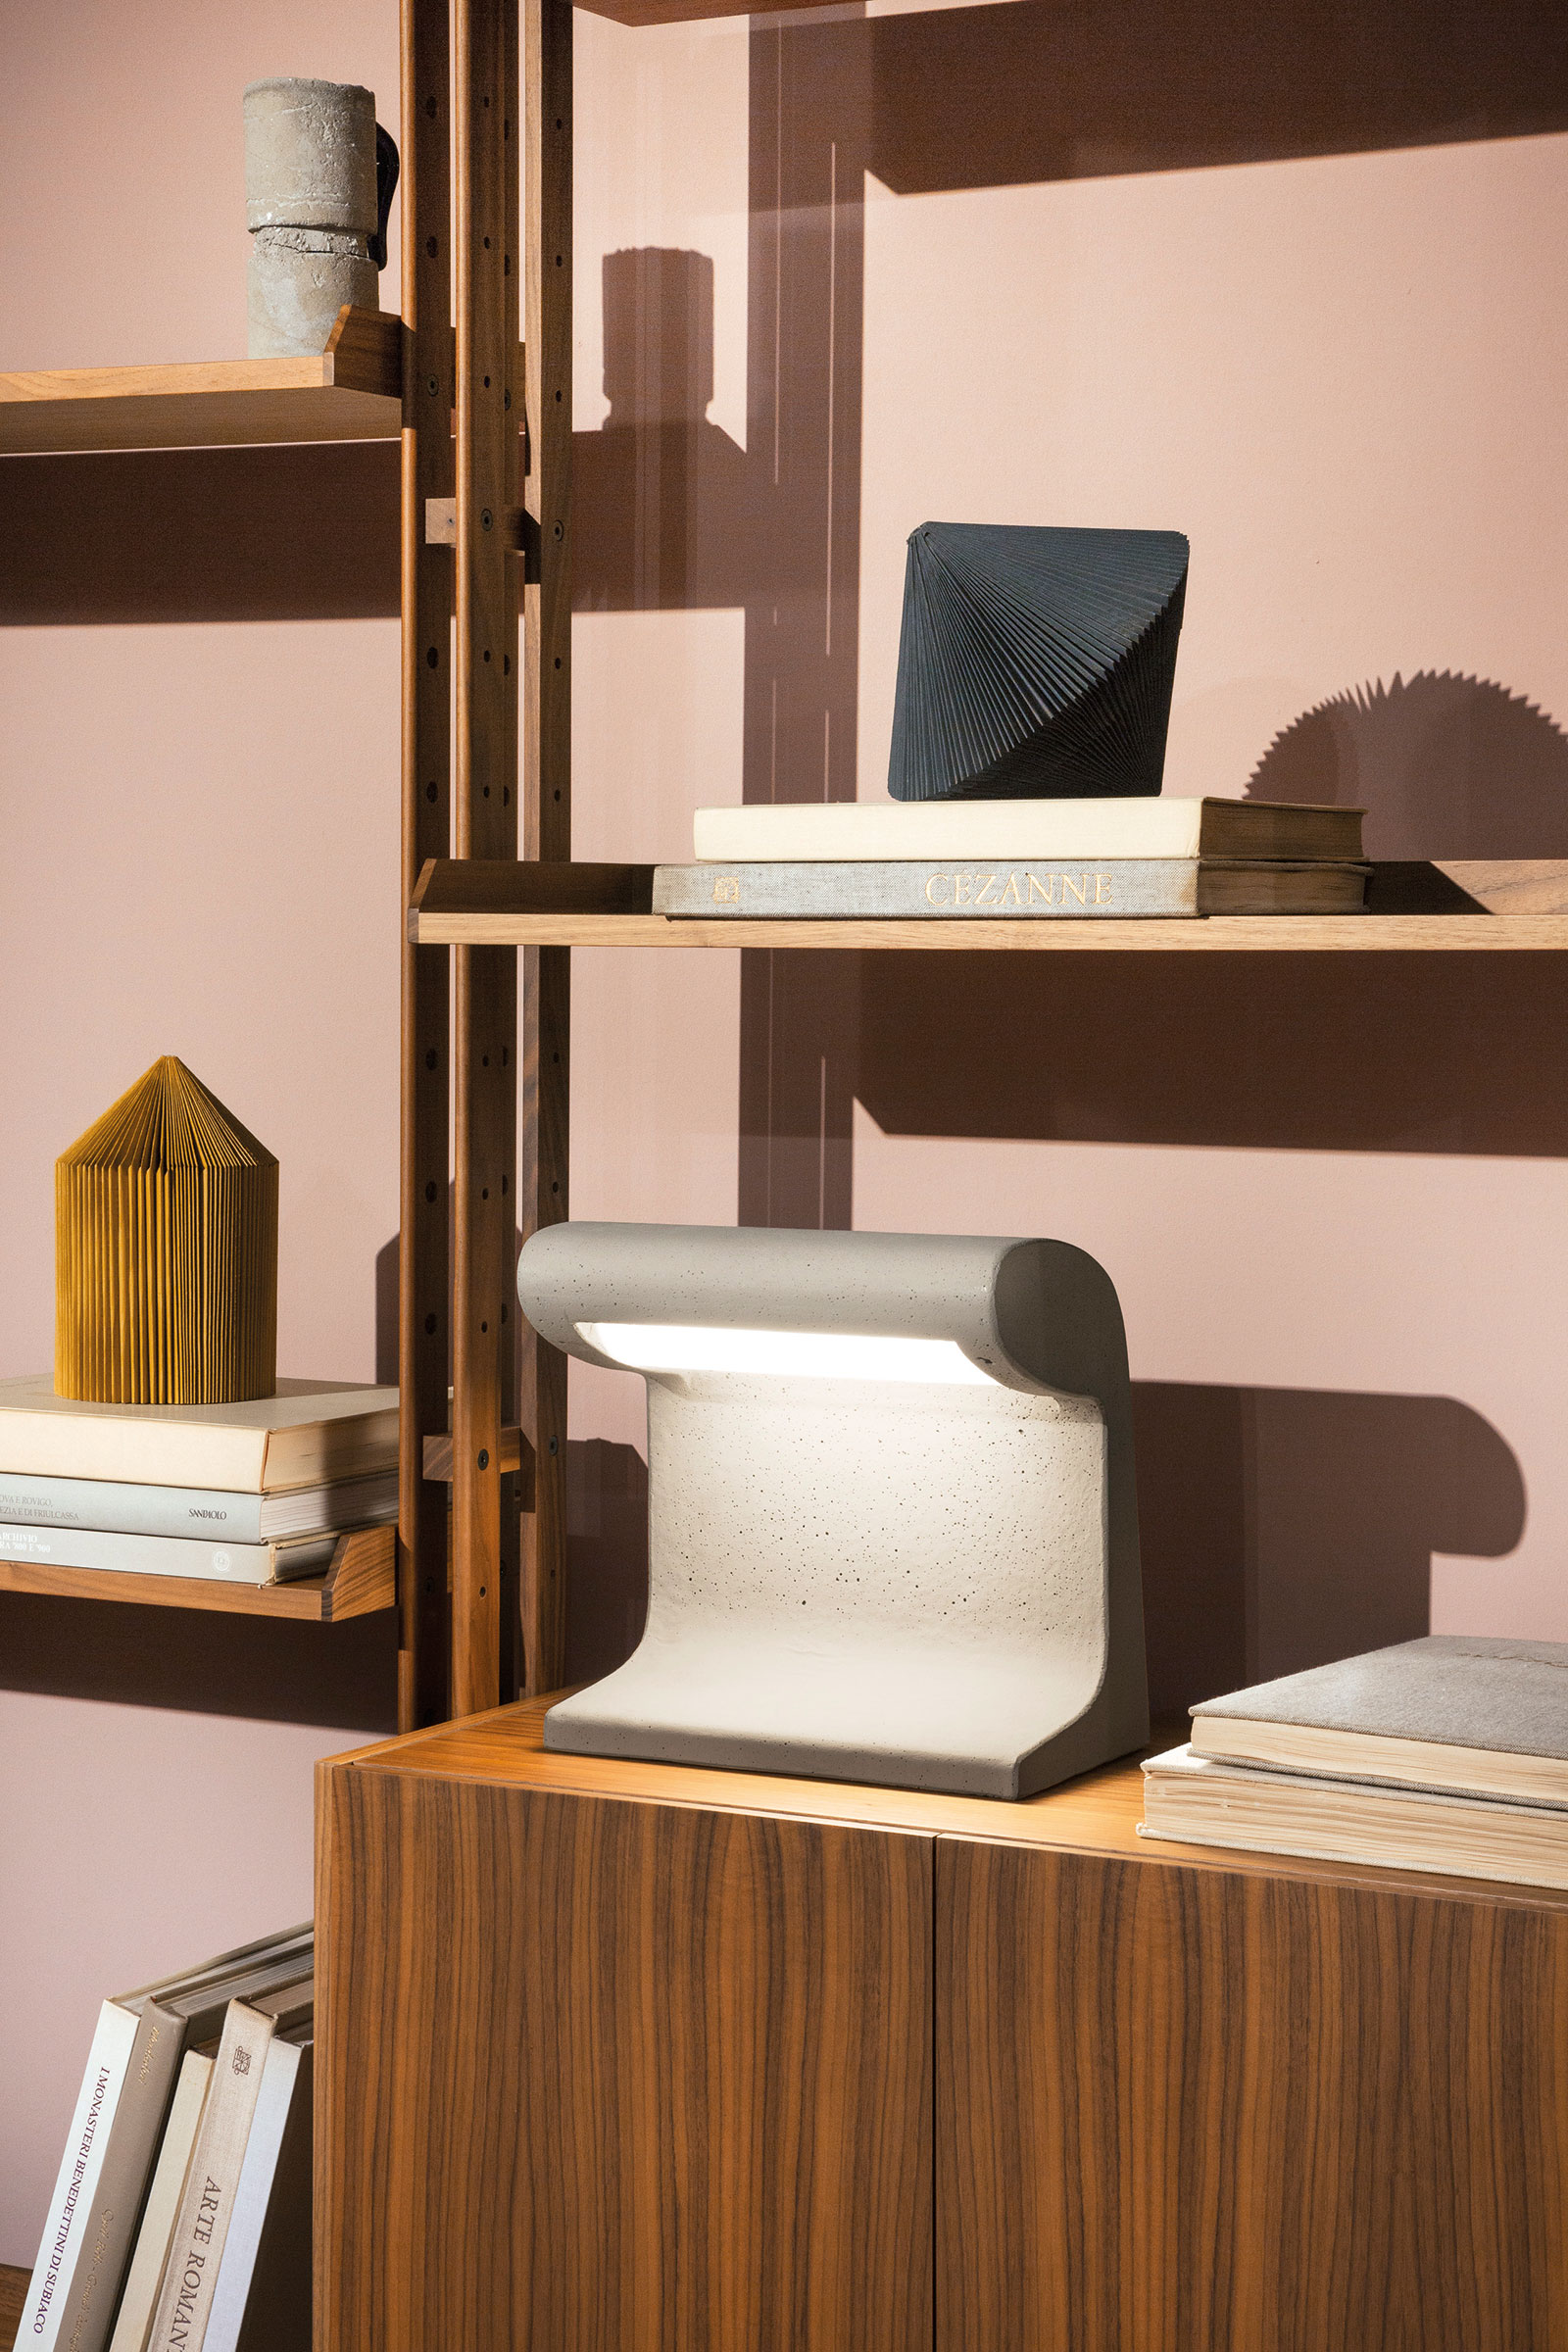 A miniature version of Le Corbusier's Borne Béton lamp. Image courtesy of Nemo Lighting